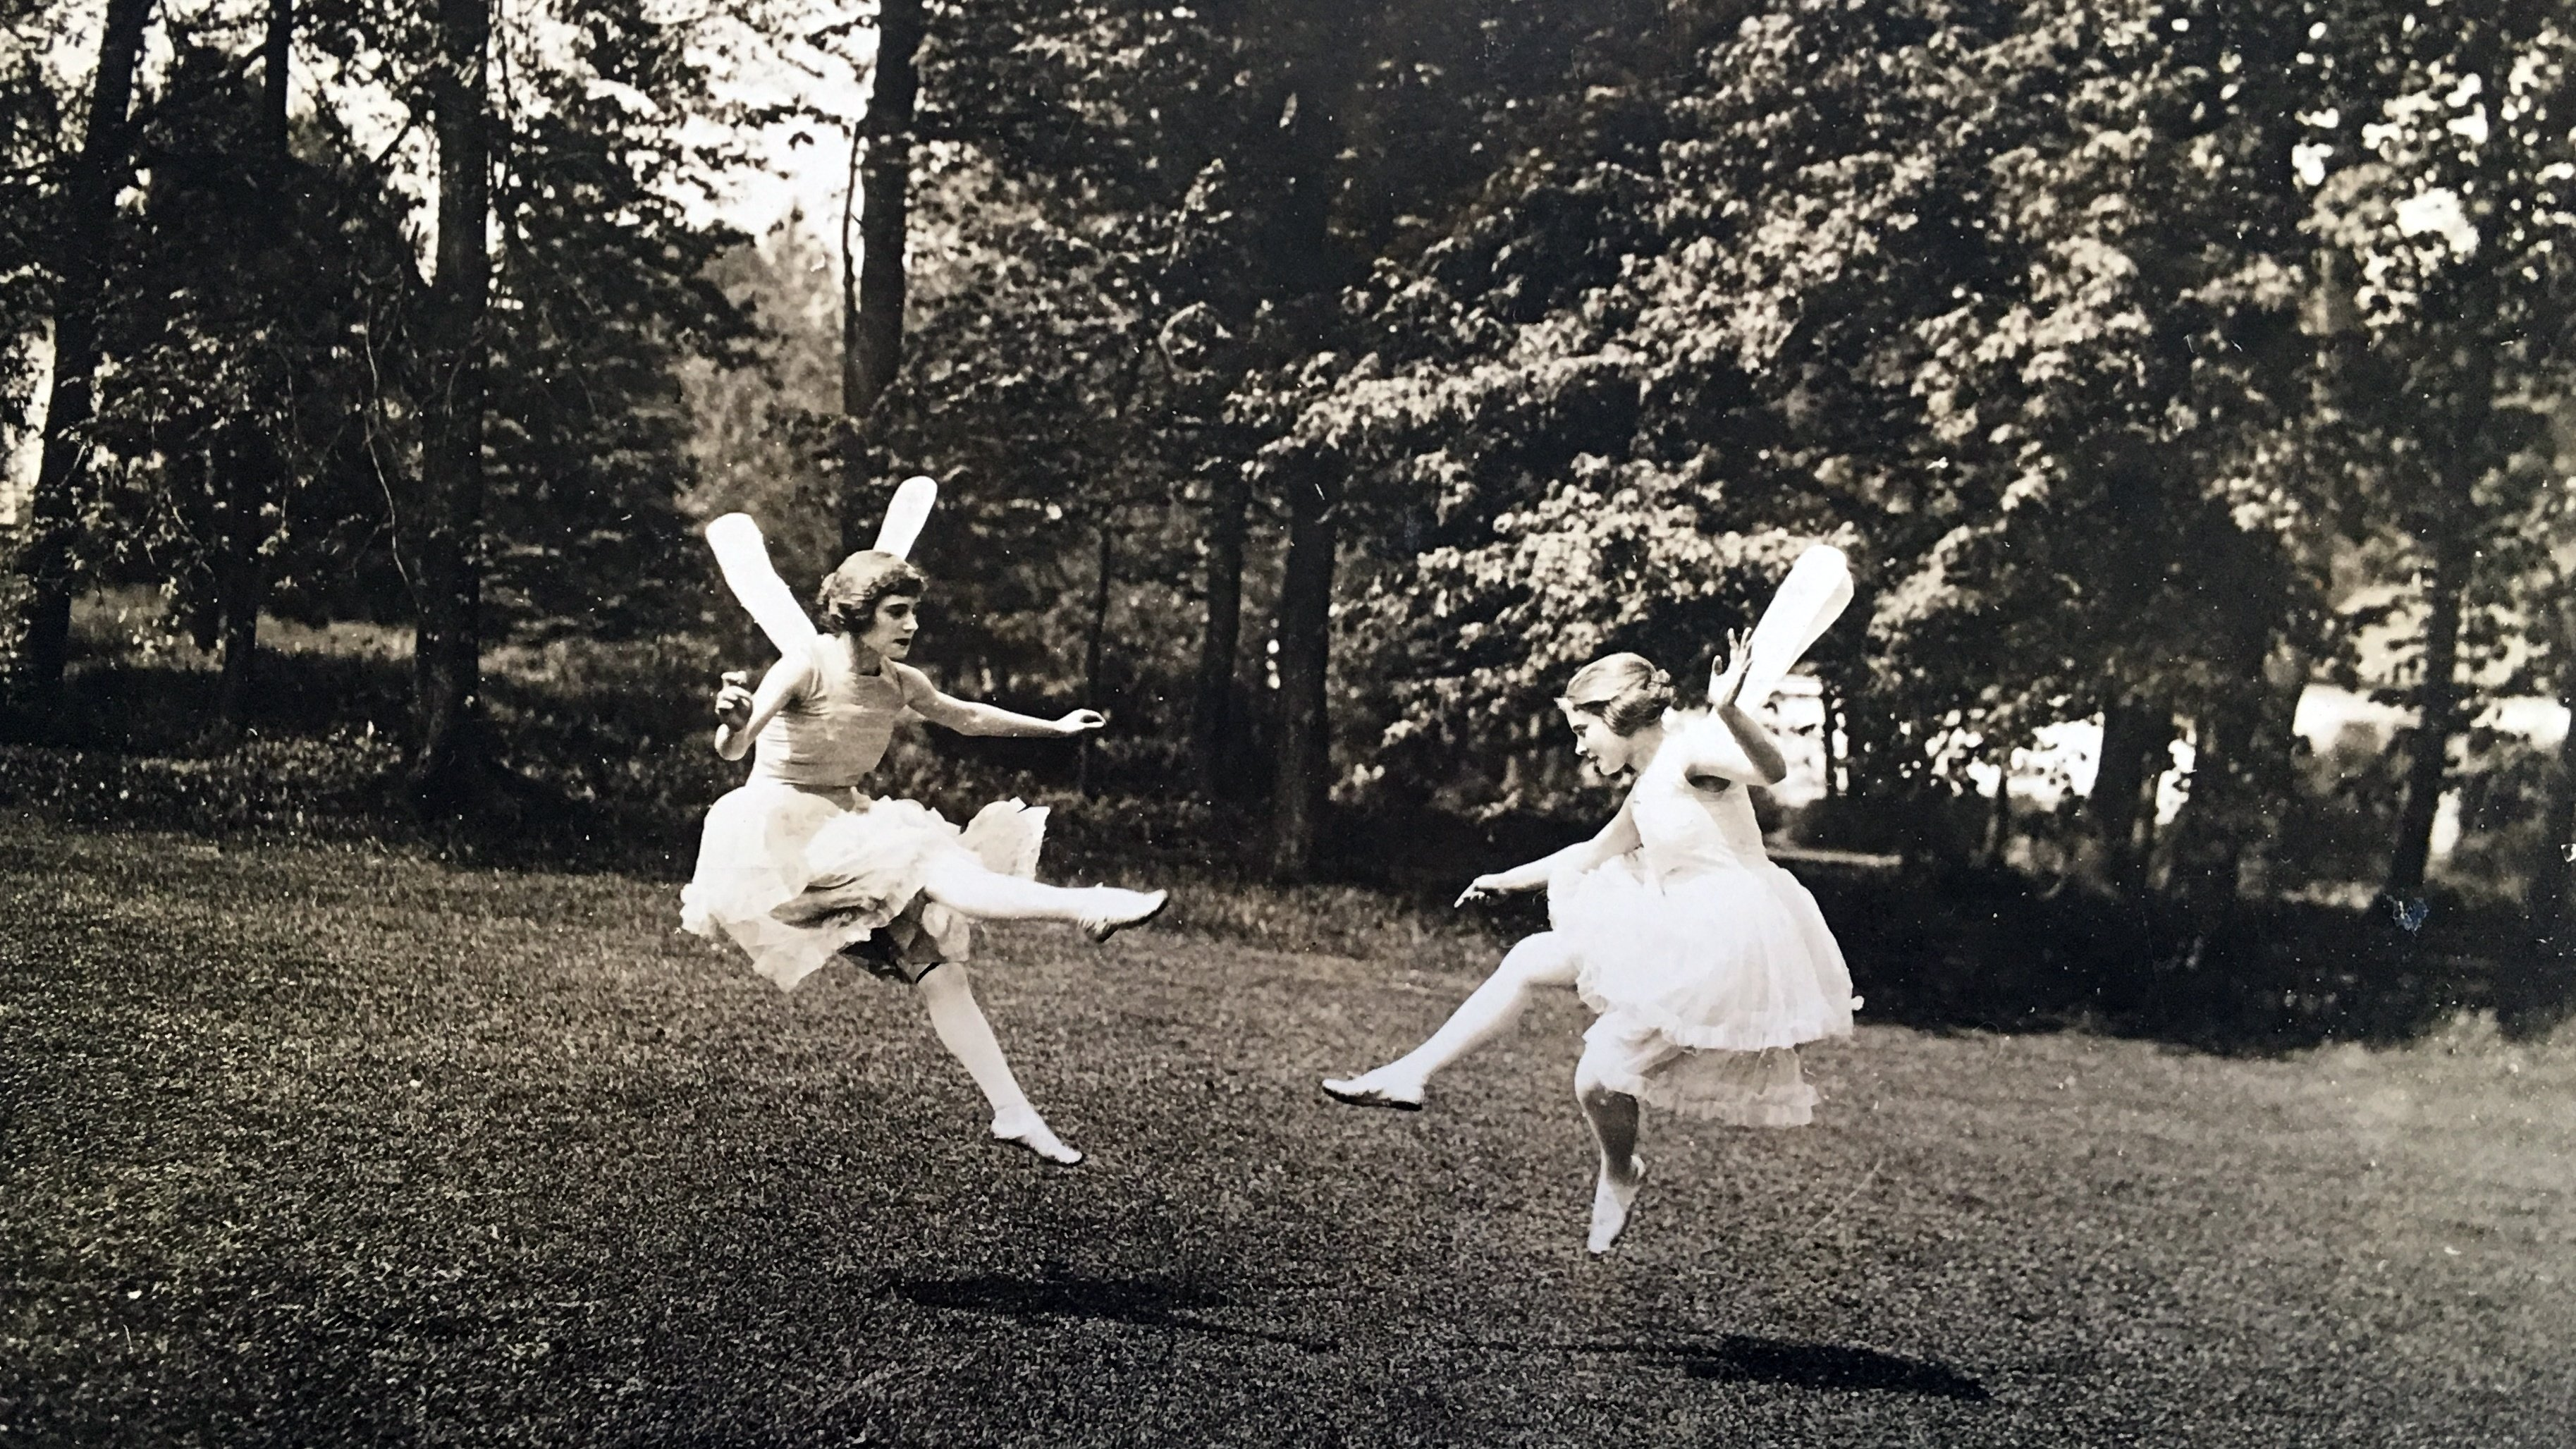 May Day fairies take flight, 1921